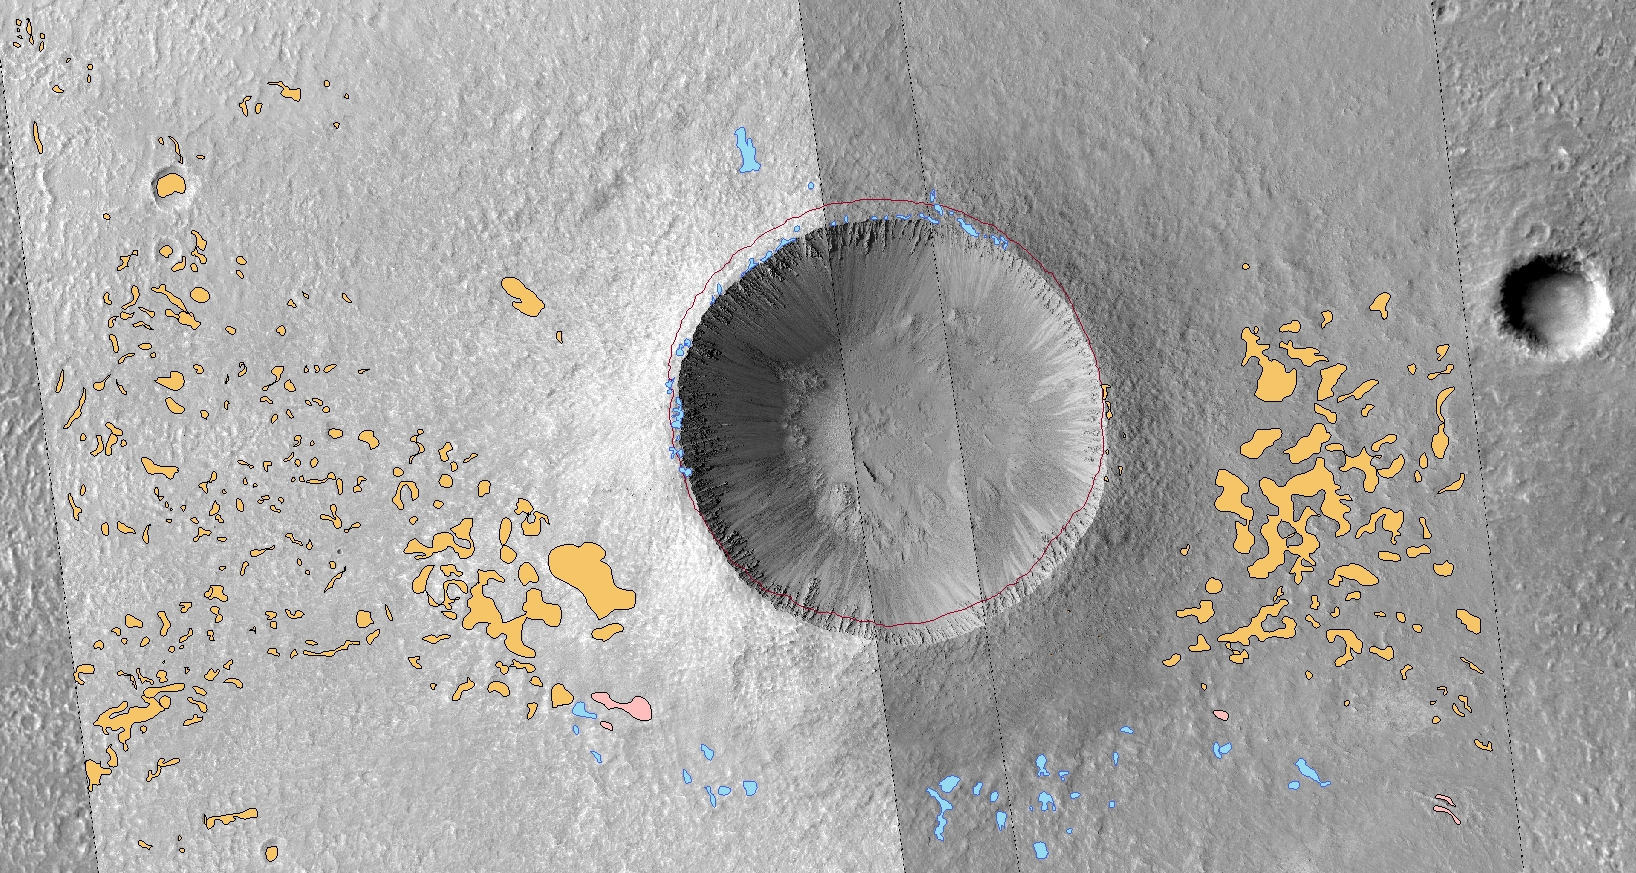 In situ map of Zumba. Orange refers to pitted pools, blue to smooth pools, and pink to possible pools. The line refers to the rim of the crater measured from a HiRISE-made DTM.